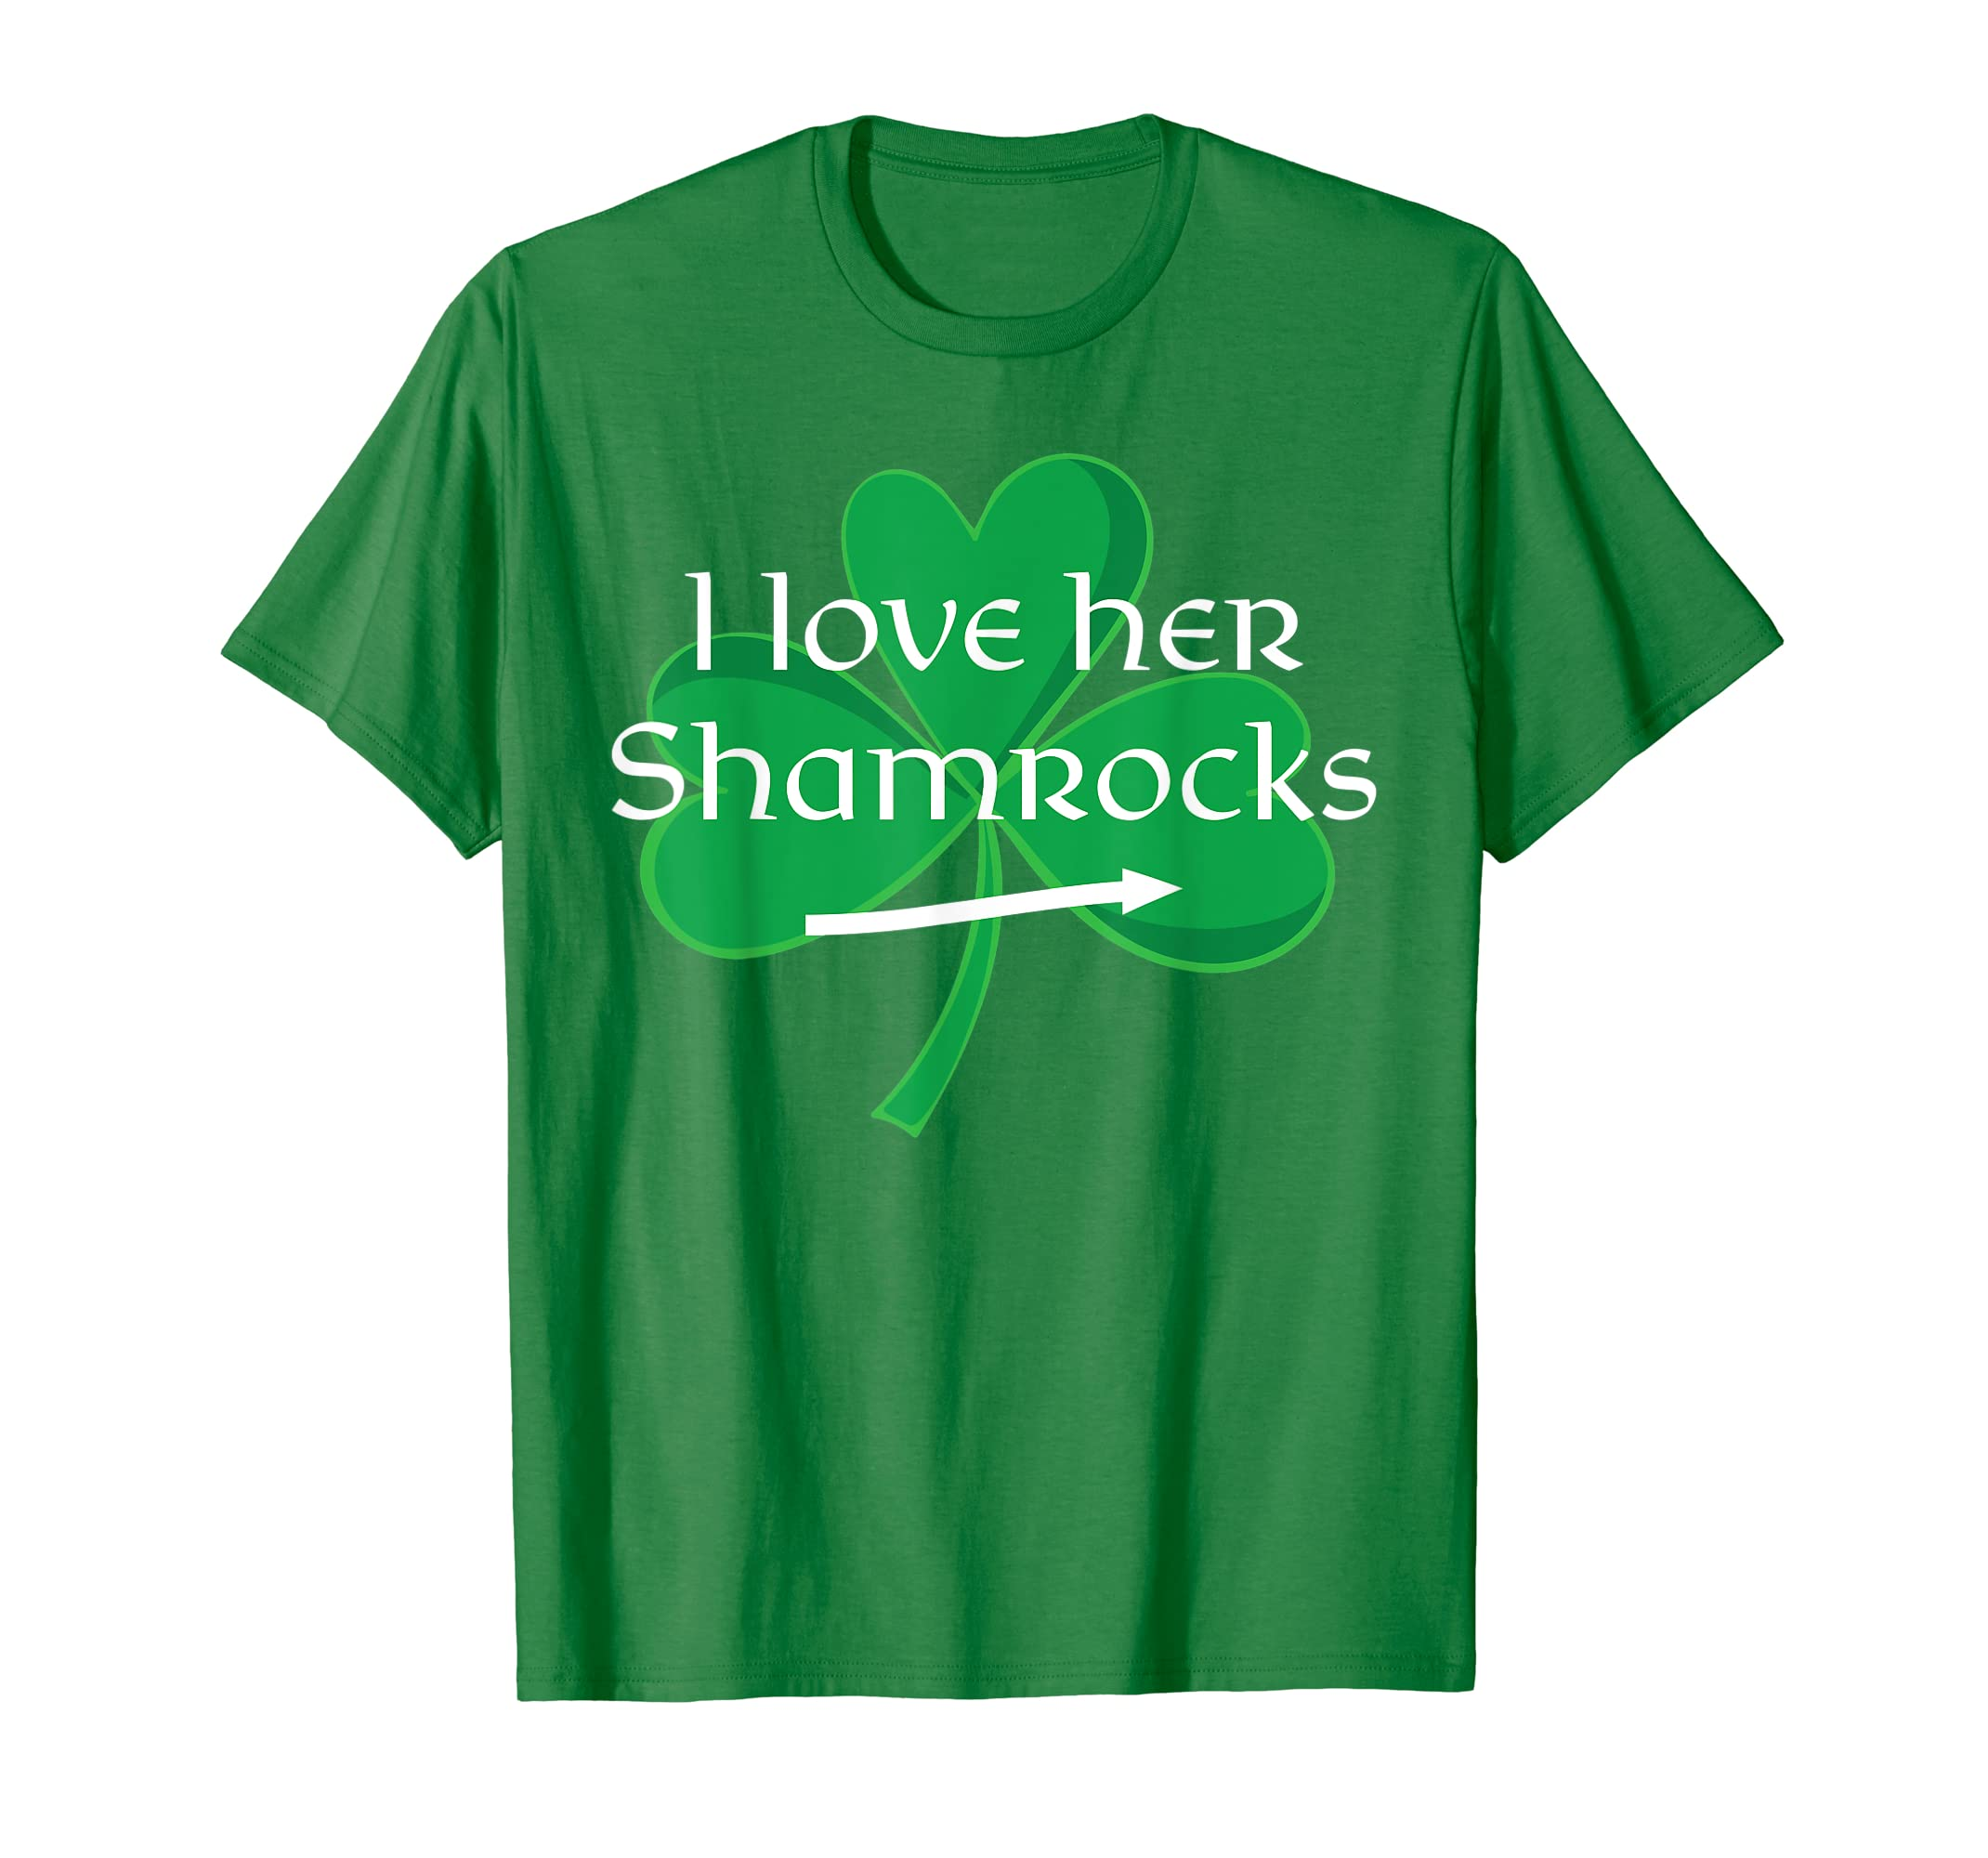 f04948eb Amazon.com: Funny Couples St. Patty's Day T-Shirt I Love Her Shamrocks:  Clothing